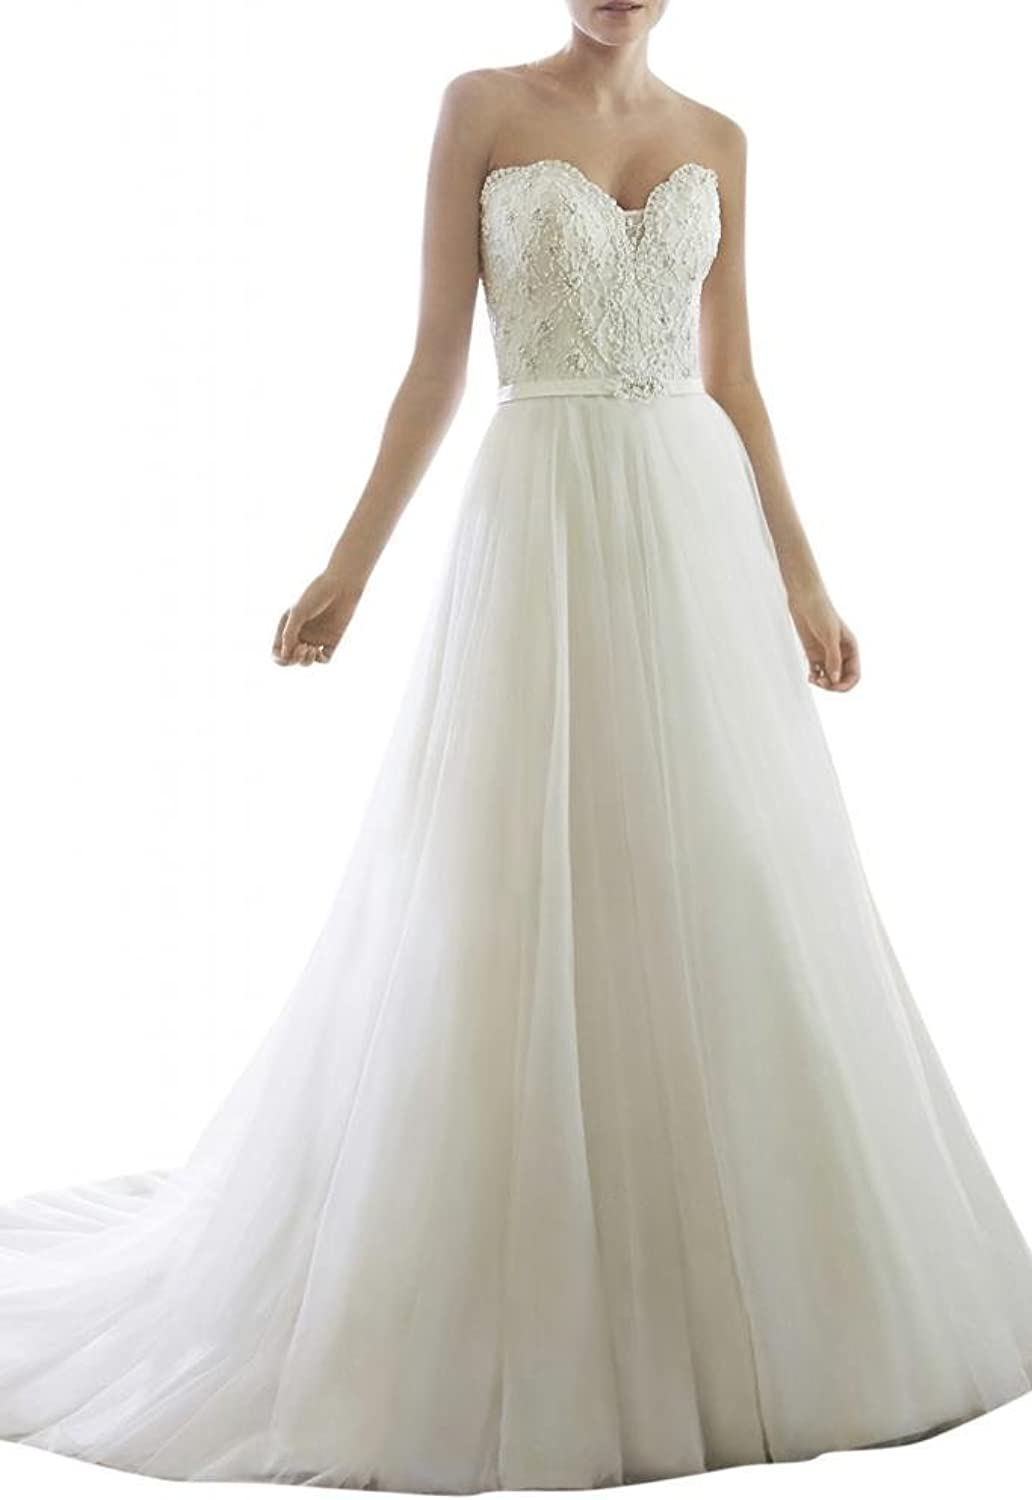 Angel Bride 2015 Ivory ALine Sweetheart Floor Length Lace Bridal Gowns Long